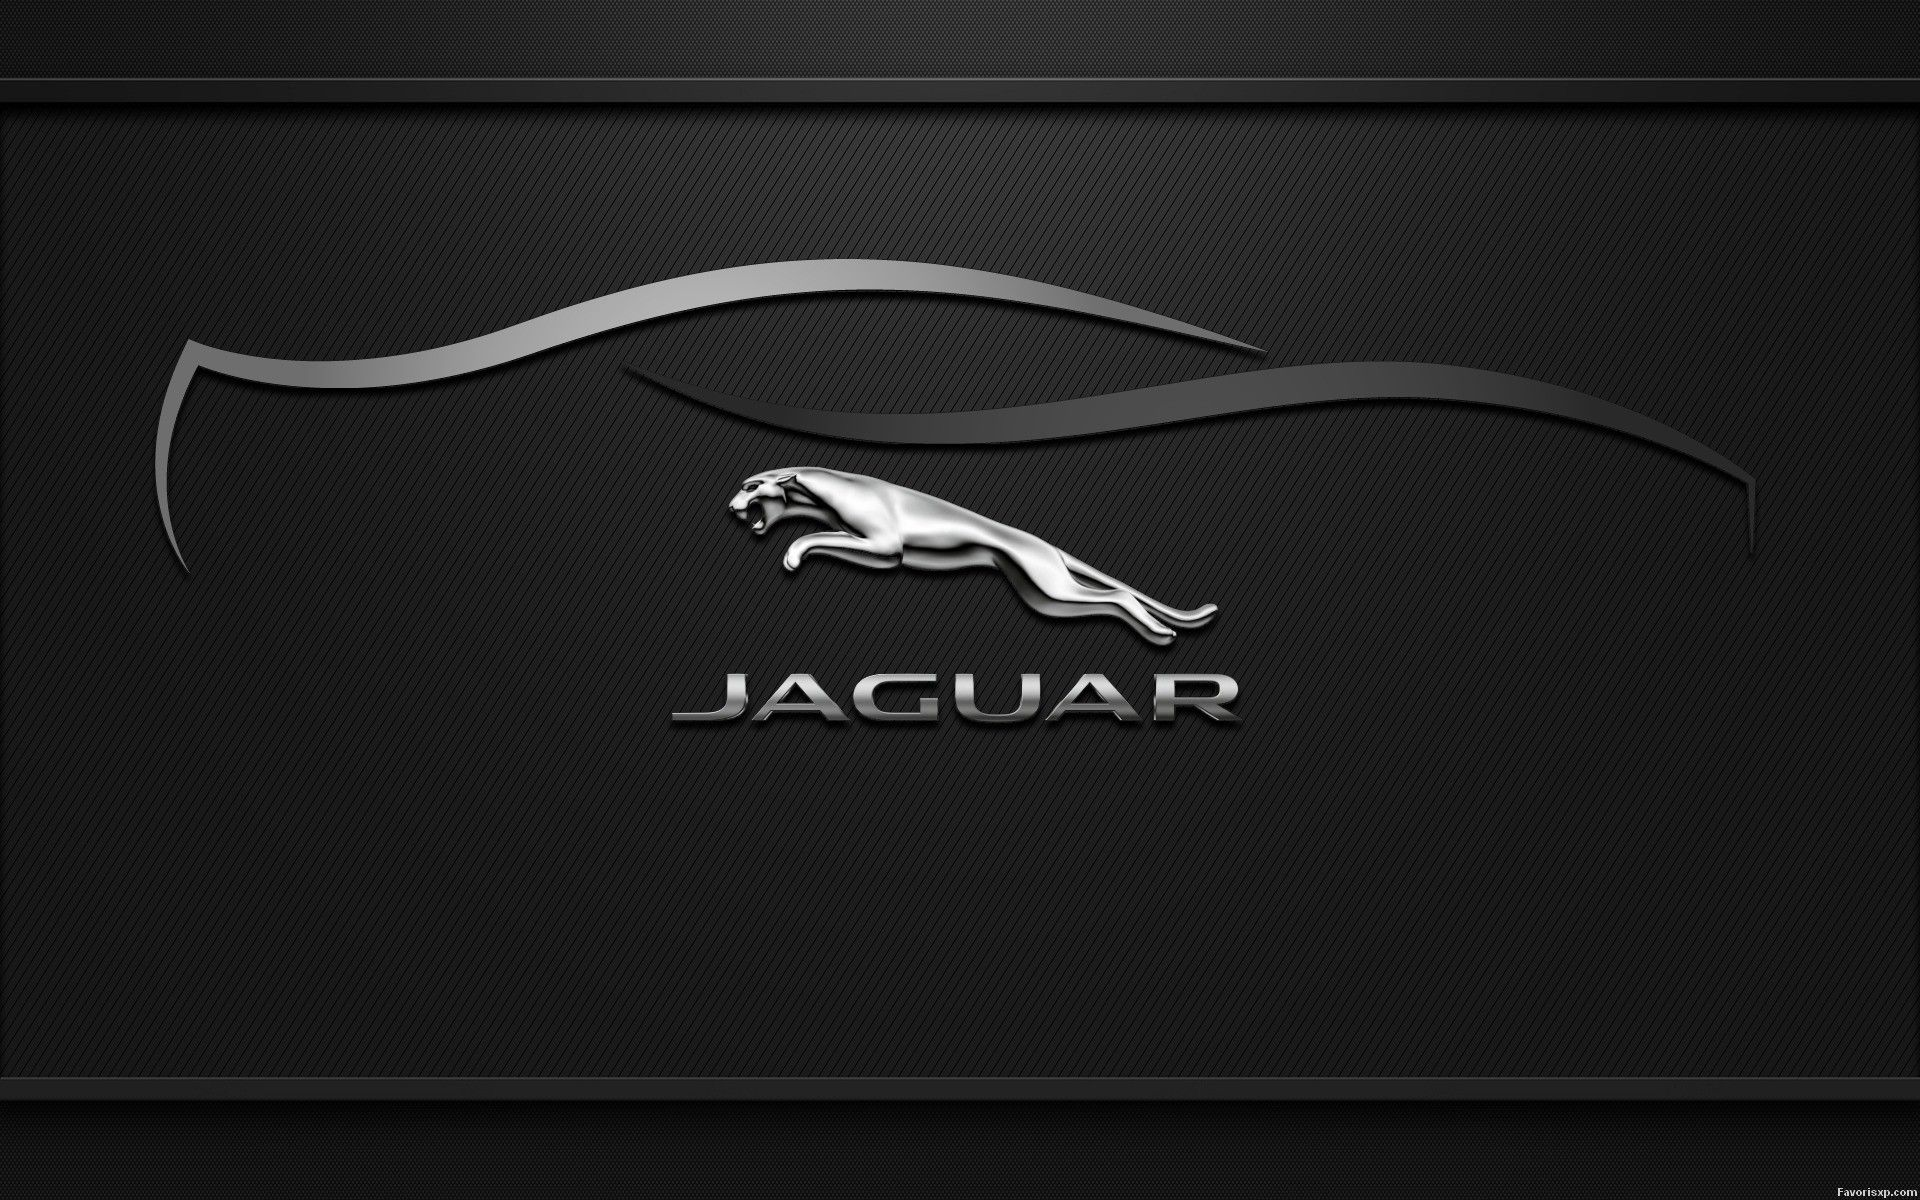 Jaguar Car Logo Wallpapers Desktop On Wallpaper 1080p Hd Jaguar